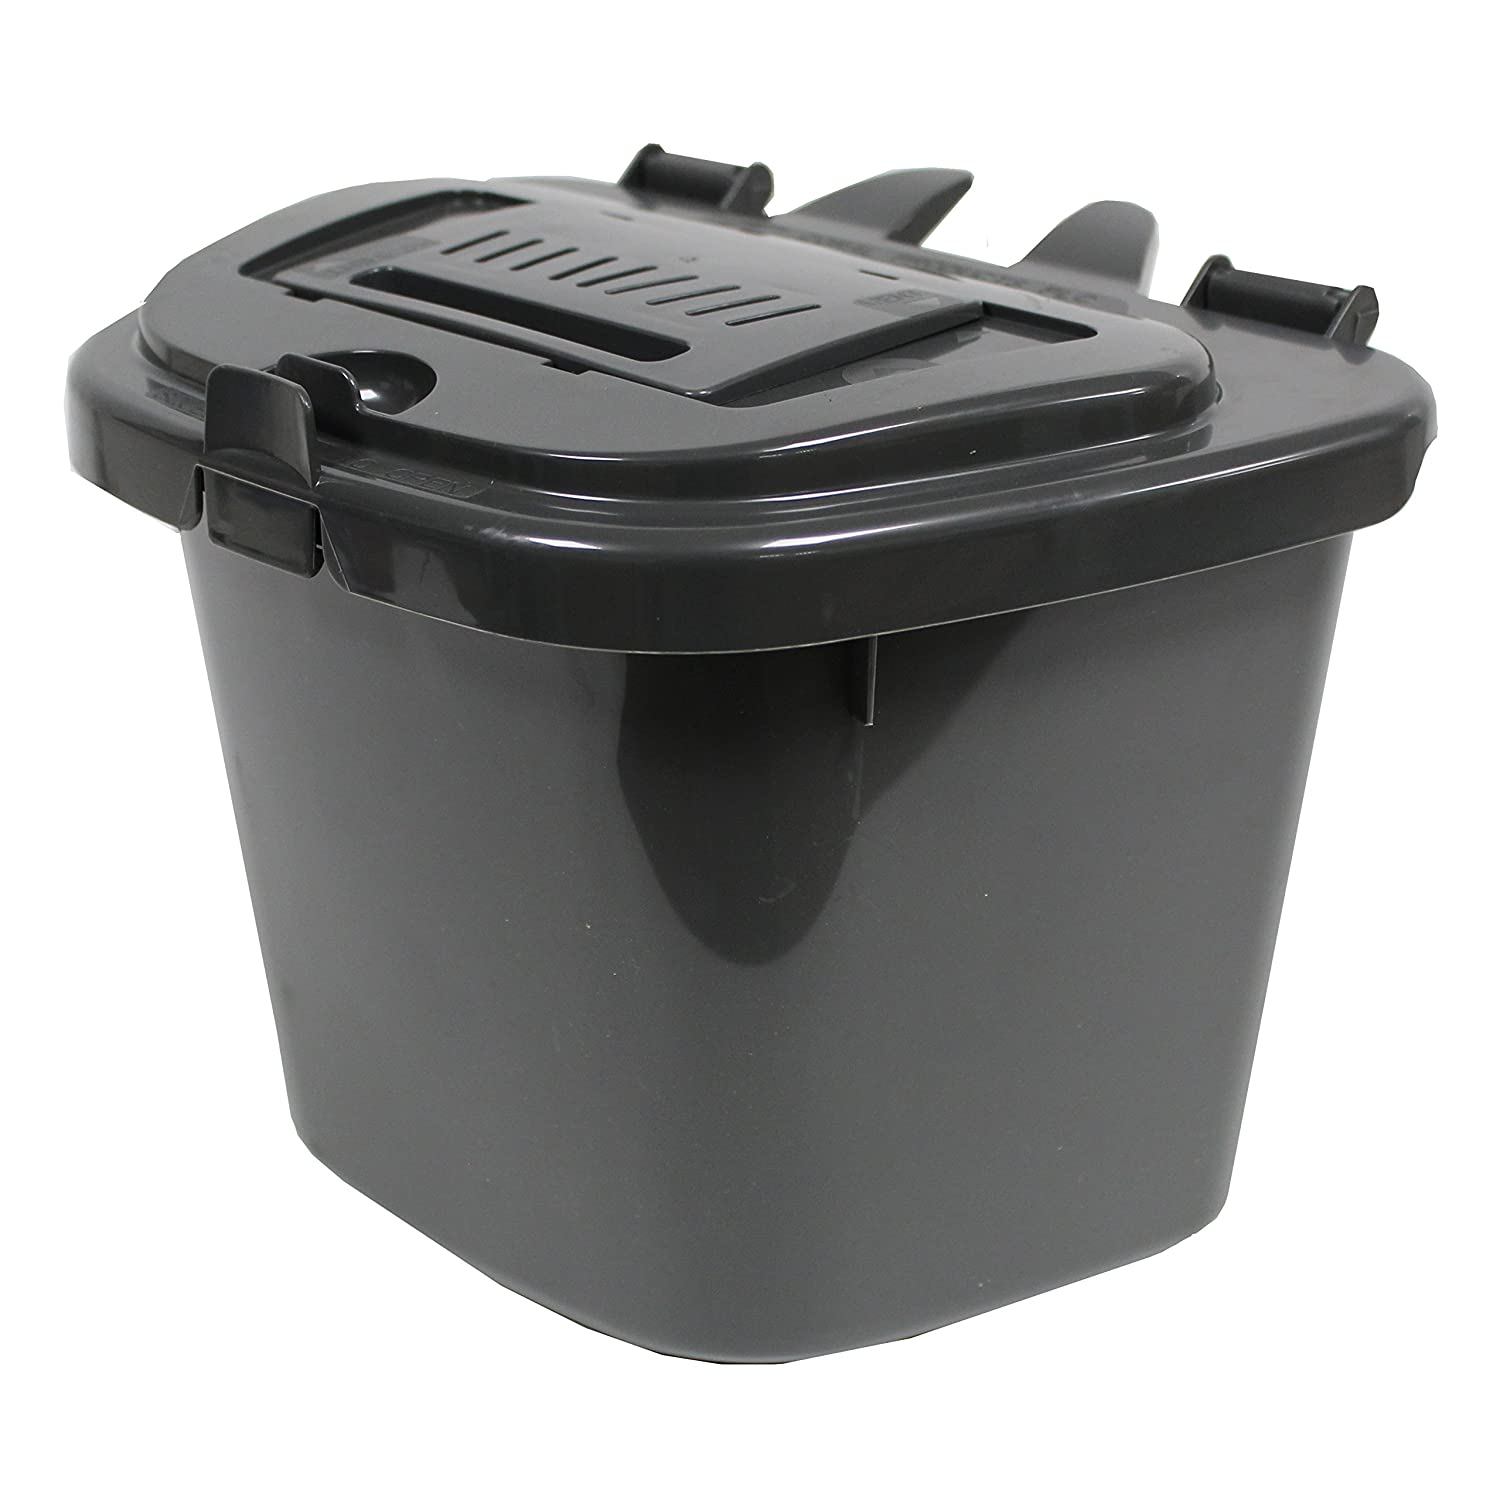 All-Green Dark Grey 5L Vented Kitchen Compost Caddy - Composting Bin for Food Waste Recycling